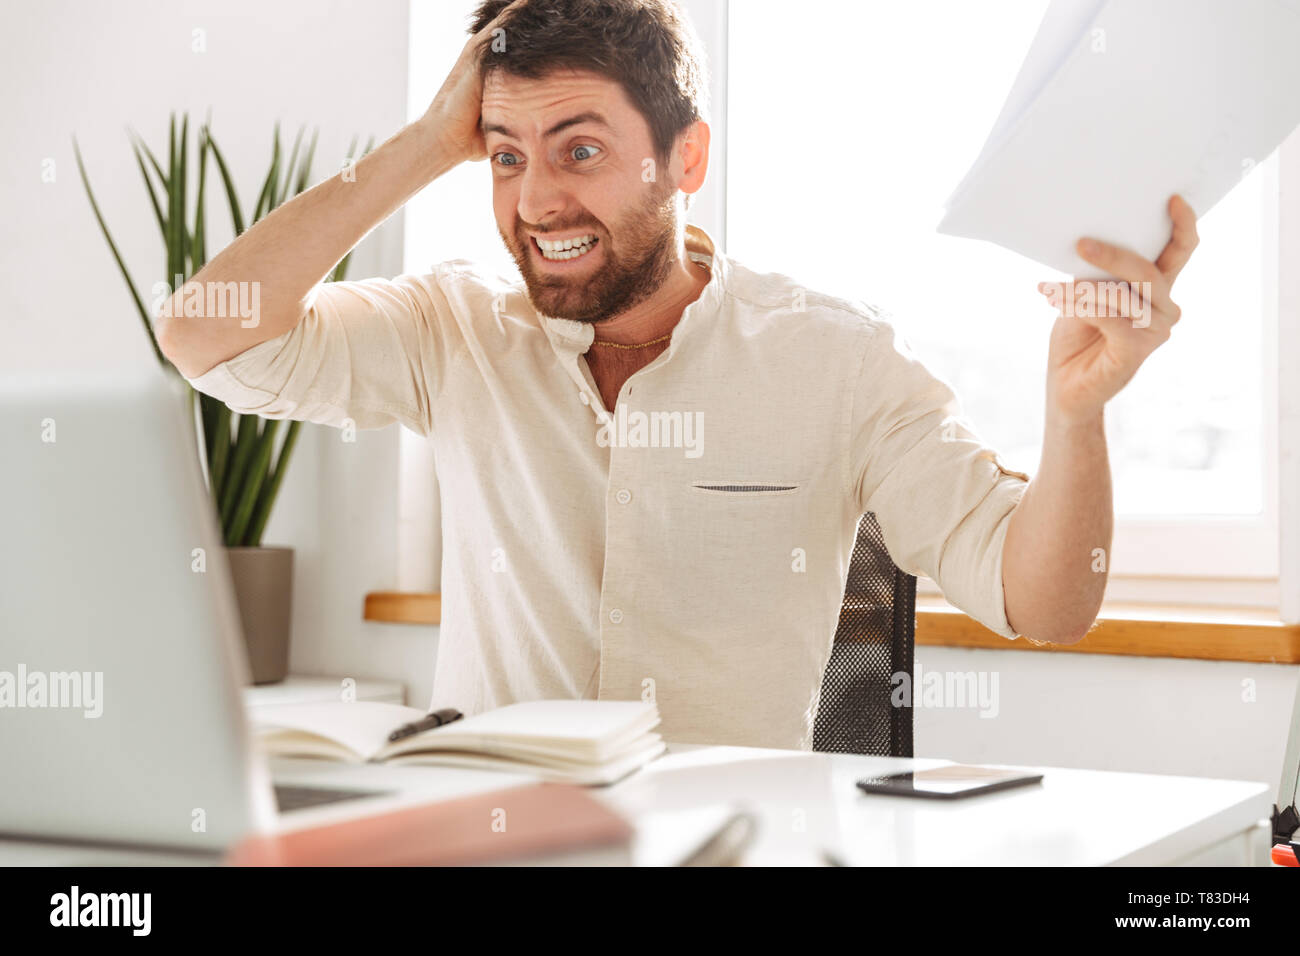 Image of stressful office worker 30s wearing white shirt using laptop and paper documents in modern workplace - Stock Image